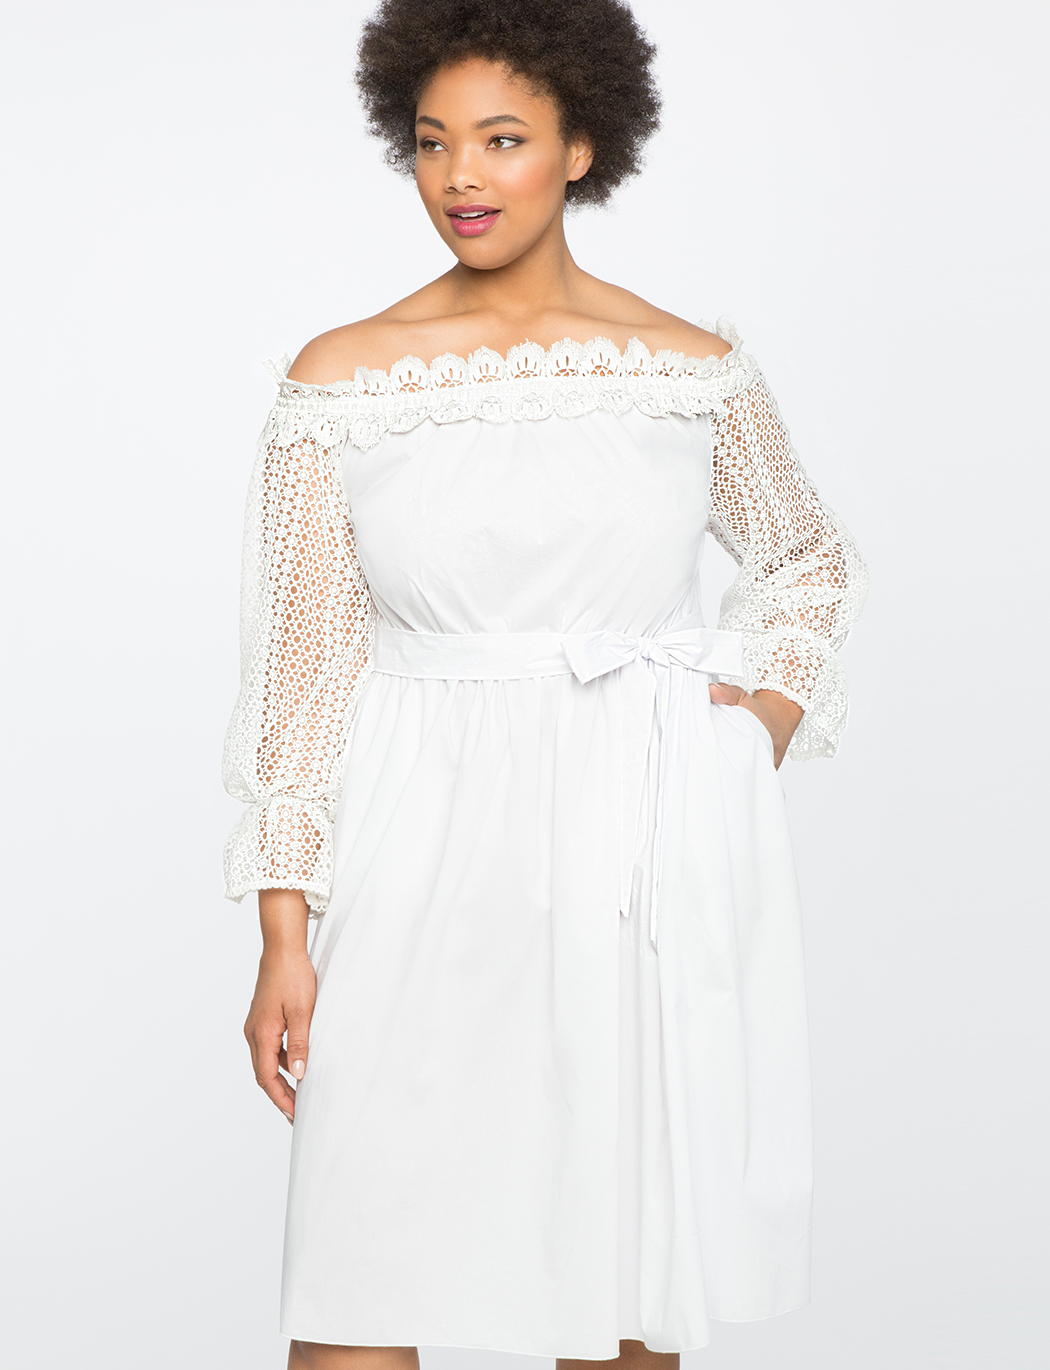 Studio Off the Shoulder Dress with Lace Trim